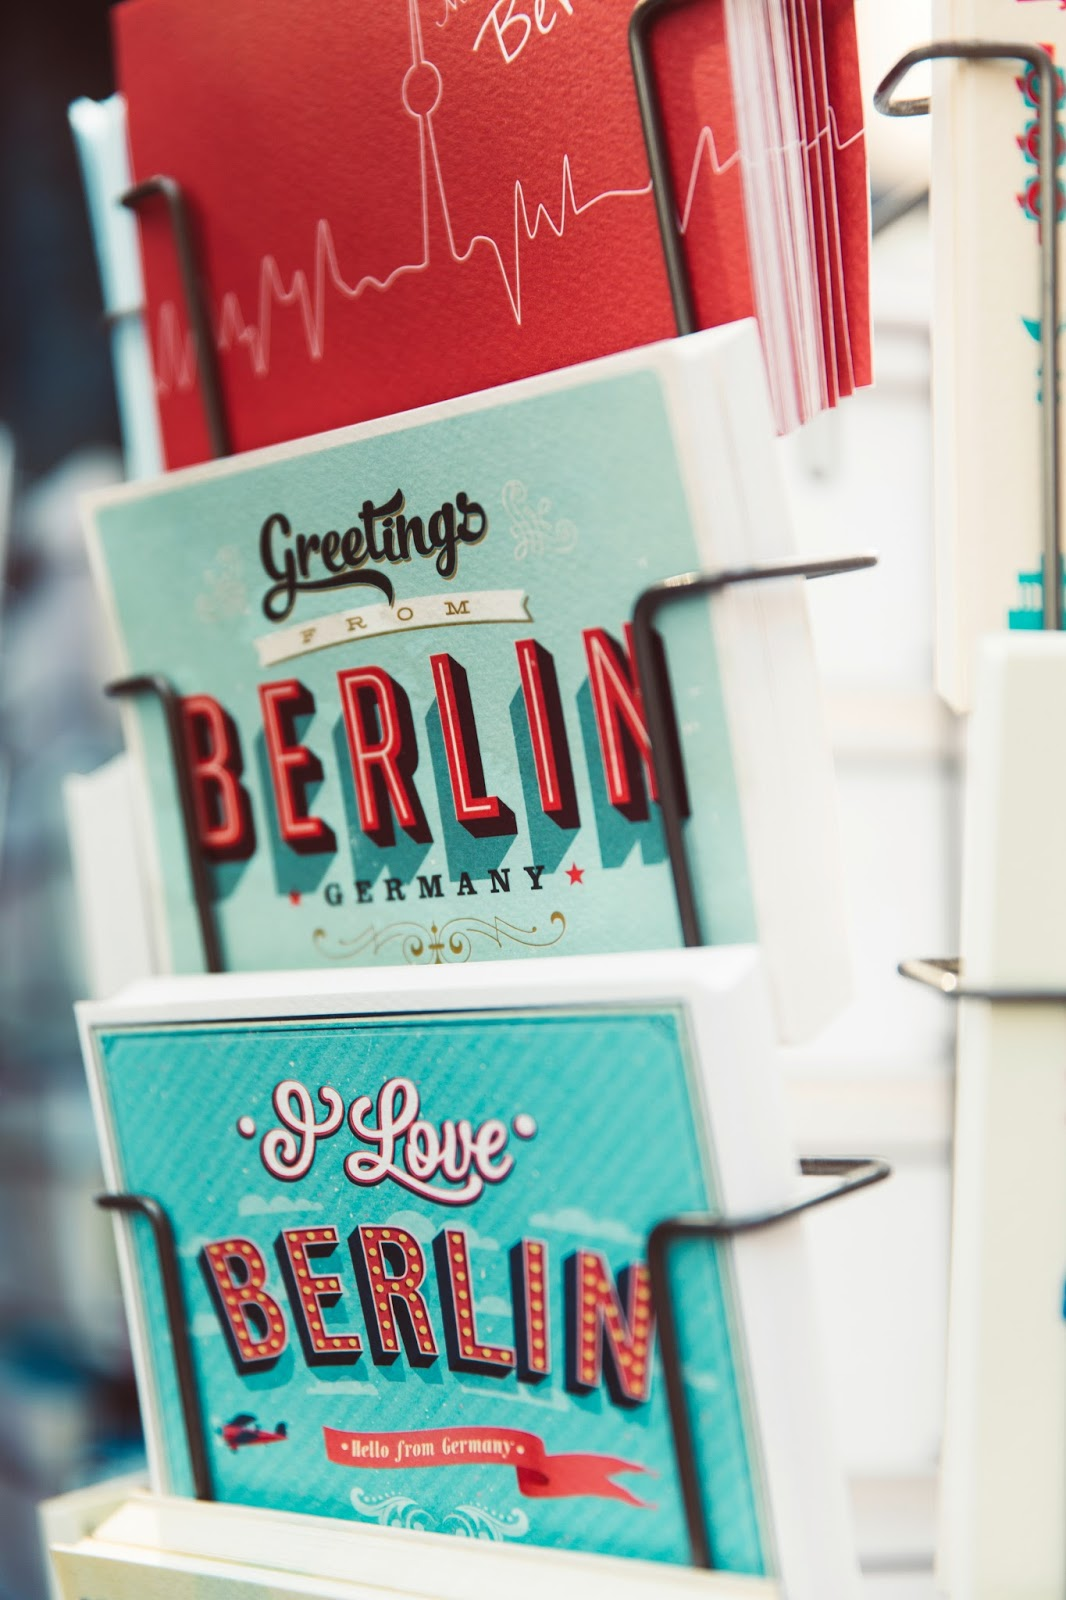 8 things to do in berlin